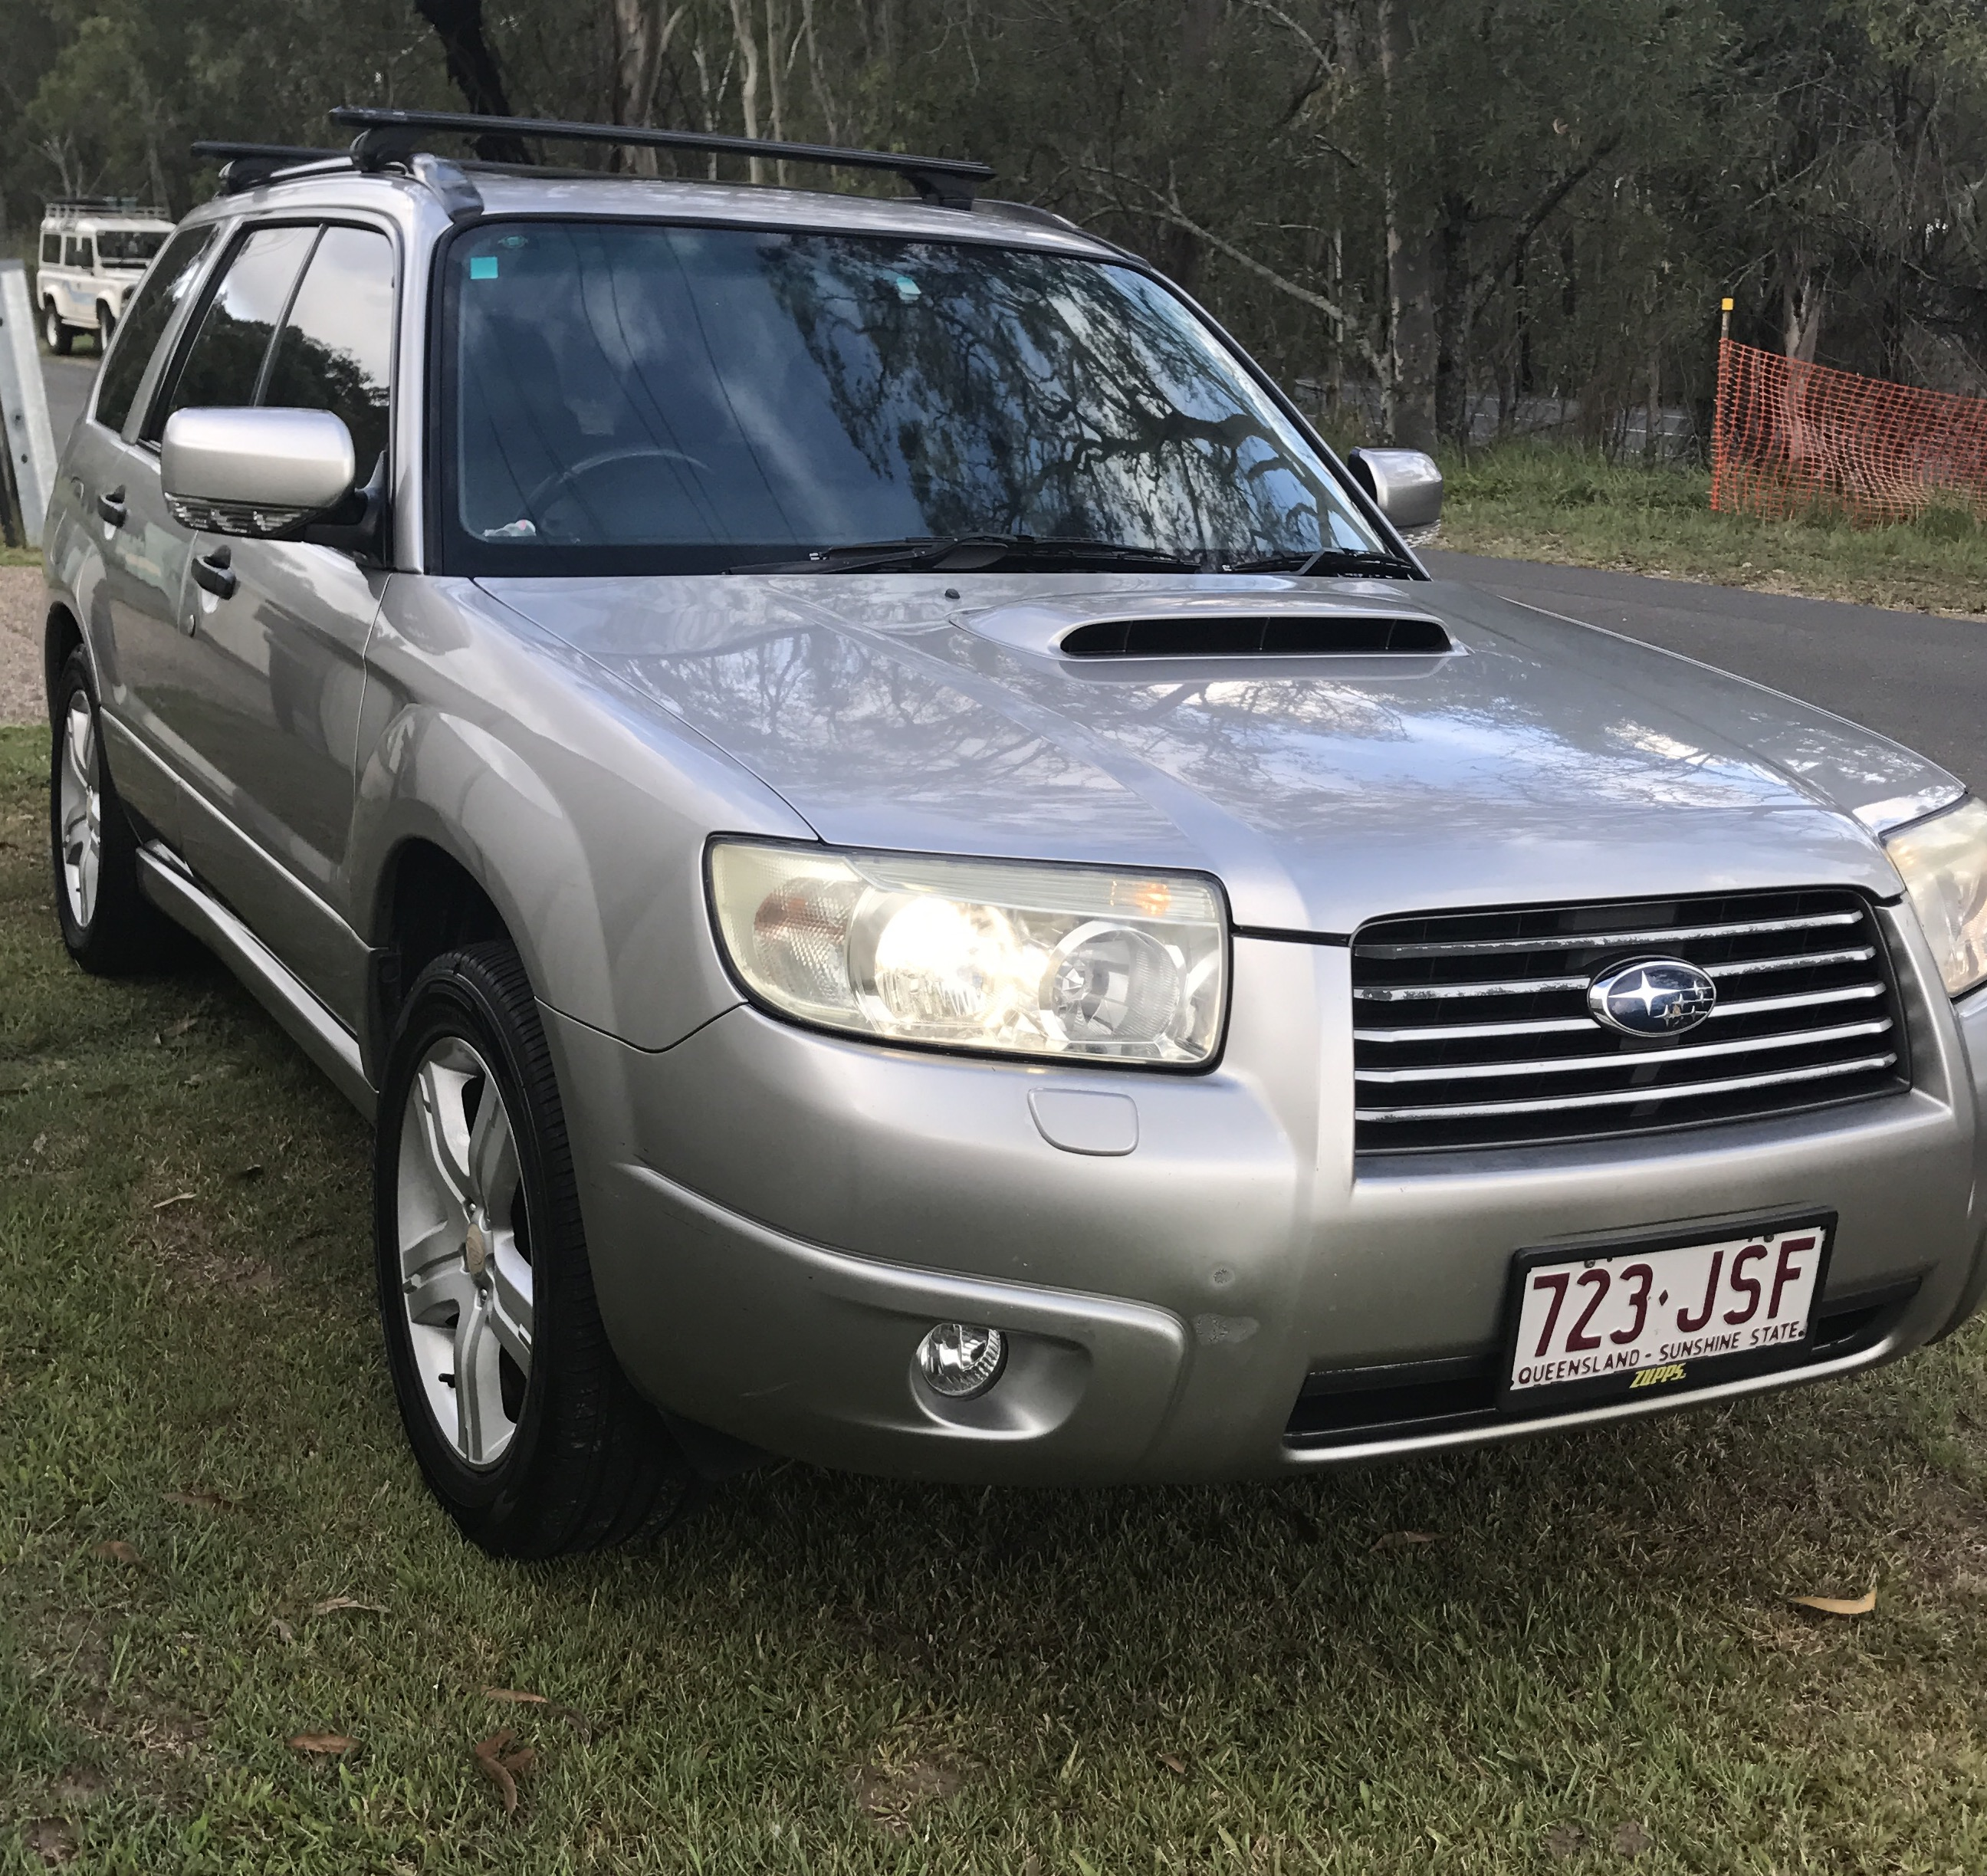 2006 subaru forester xt luxury my06 car sales qld gold coast 2975833. Black Bedroom Furniture Sets. Home Design Ideas